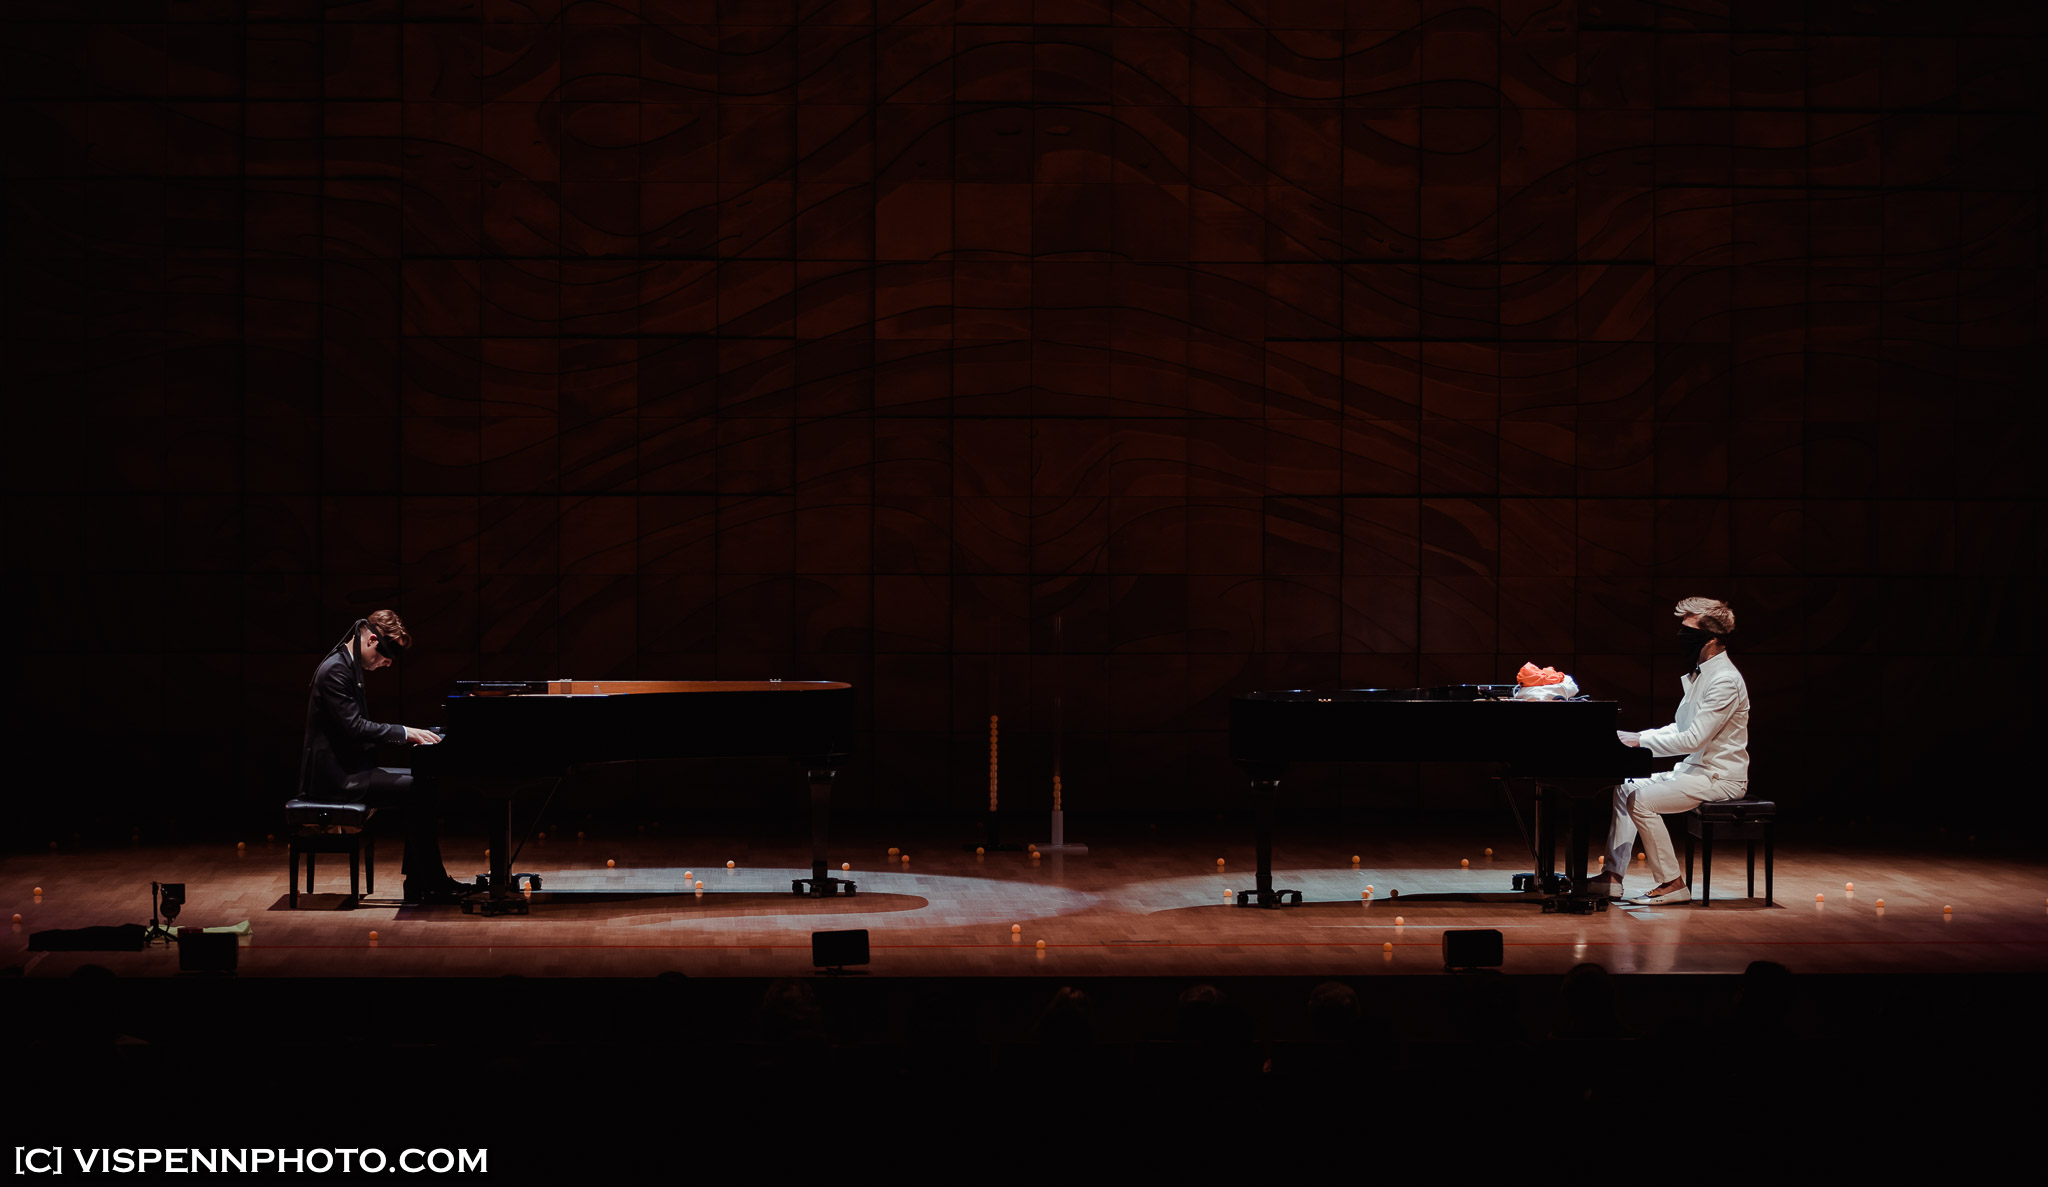 Melbourne CONCERTS Photography 墨尔本 演唱会 照片 摄影师 VISPENN PianoBattle 2P 3493 5D4 VISPENN